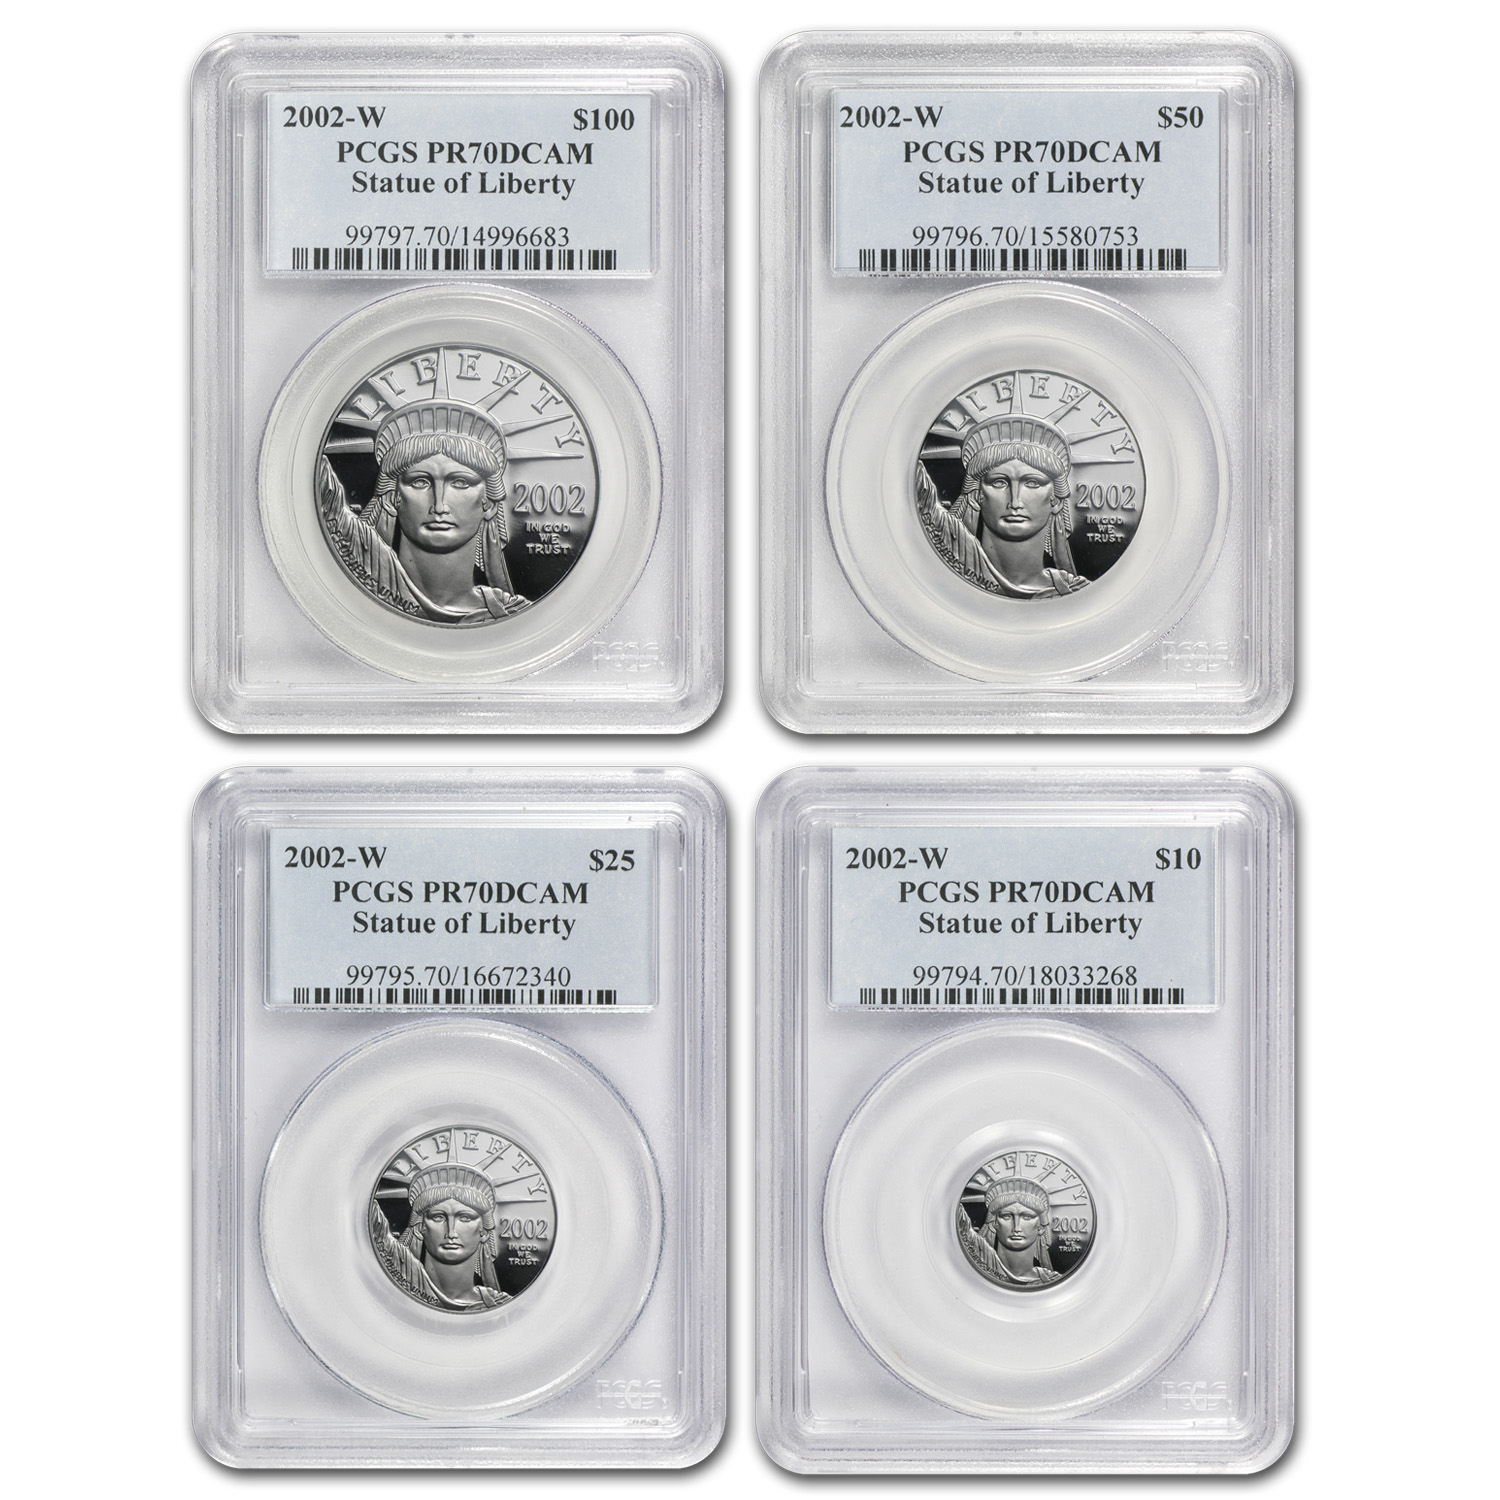 2002-W 4-Coin Proof Platinum American Eagle Set PR-70 PCGS